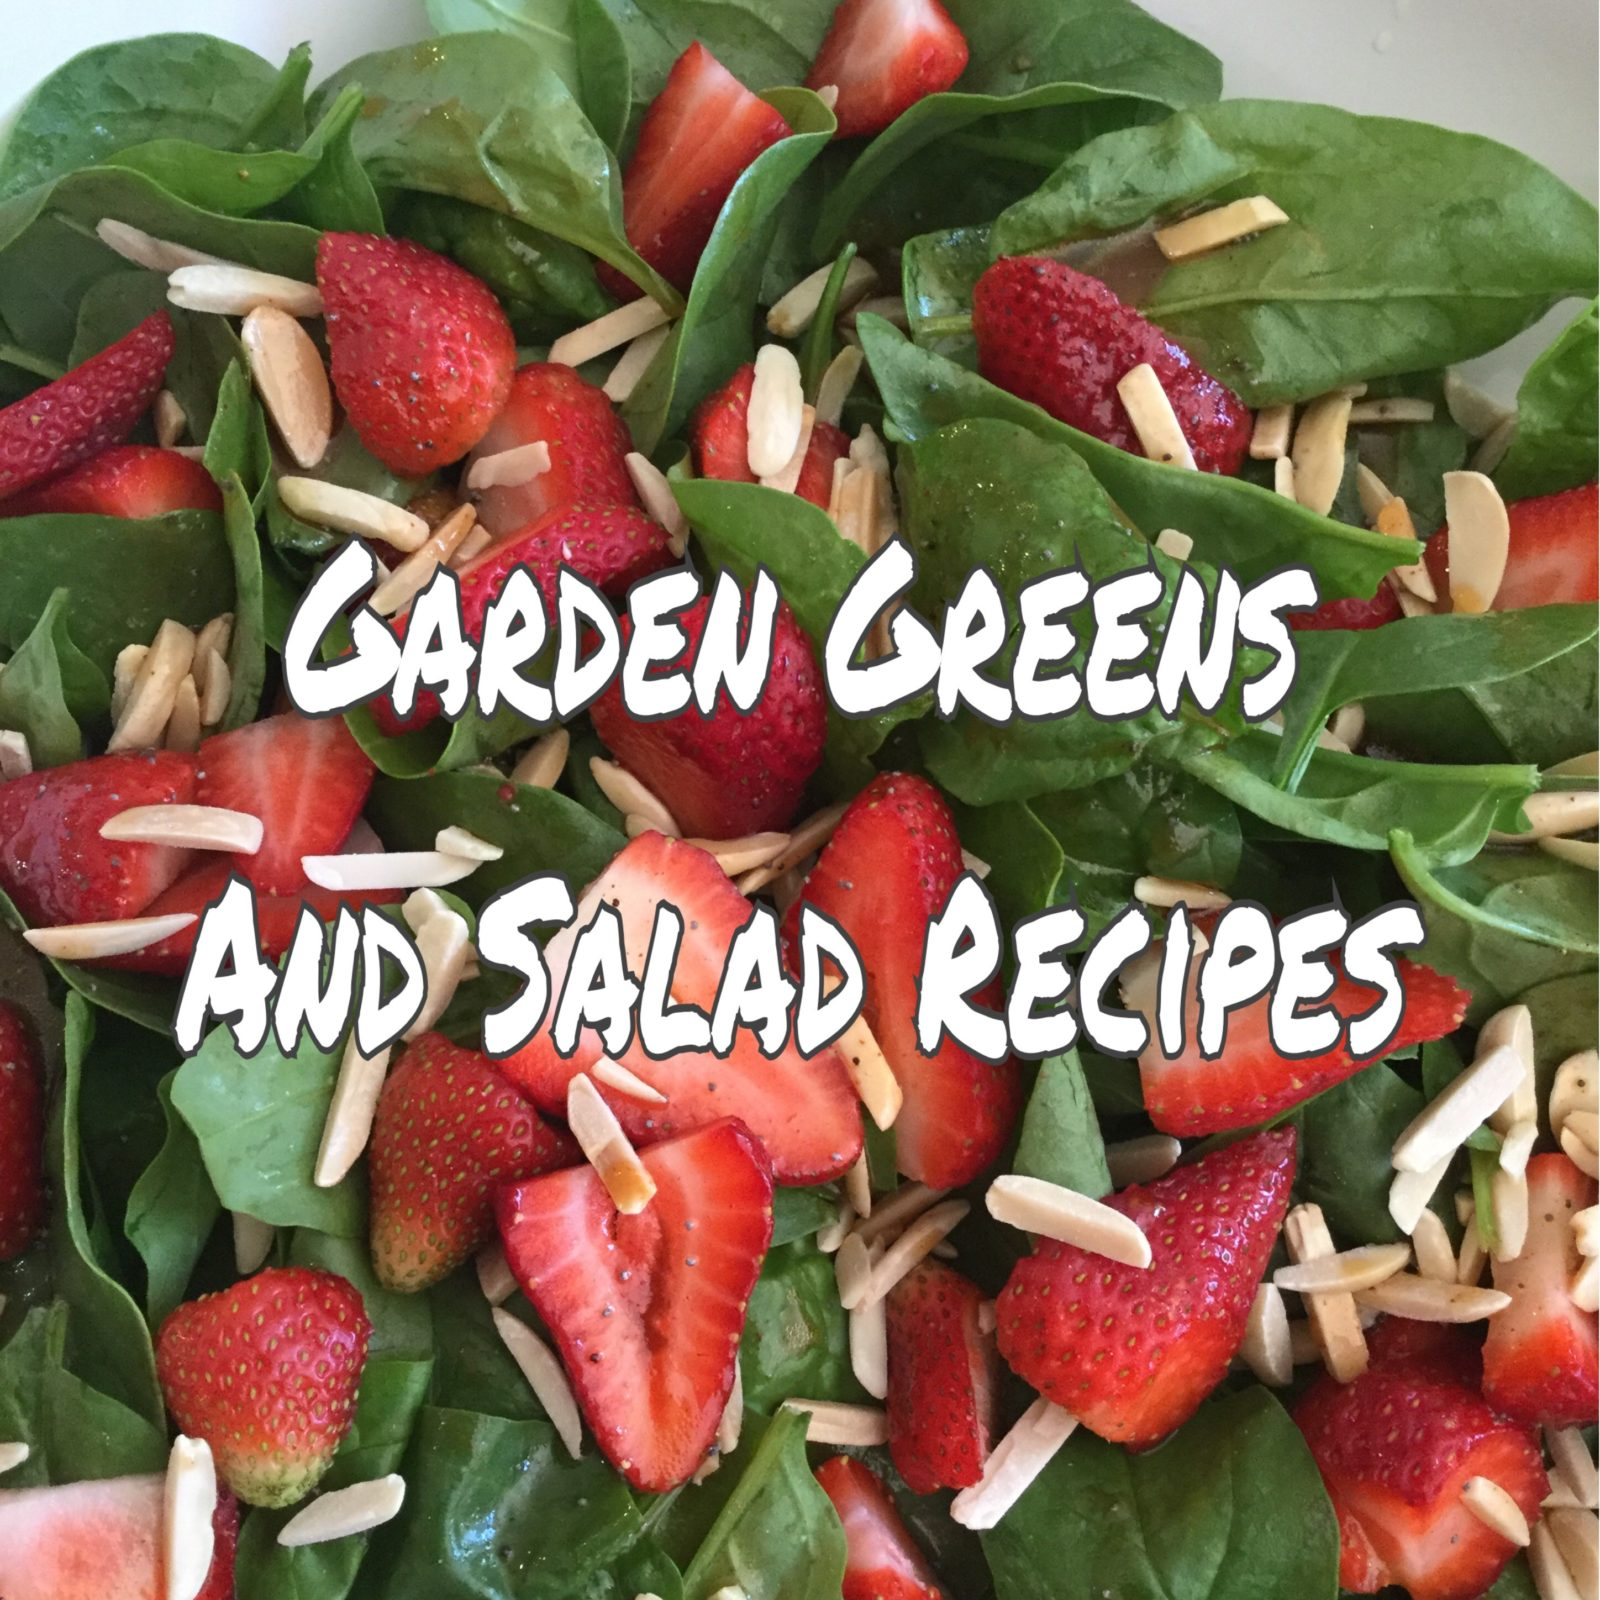 Garden Greens and Salad Recipes